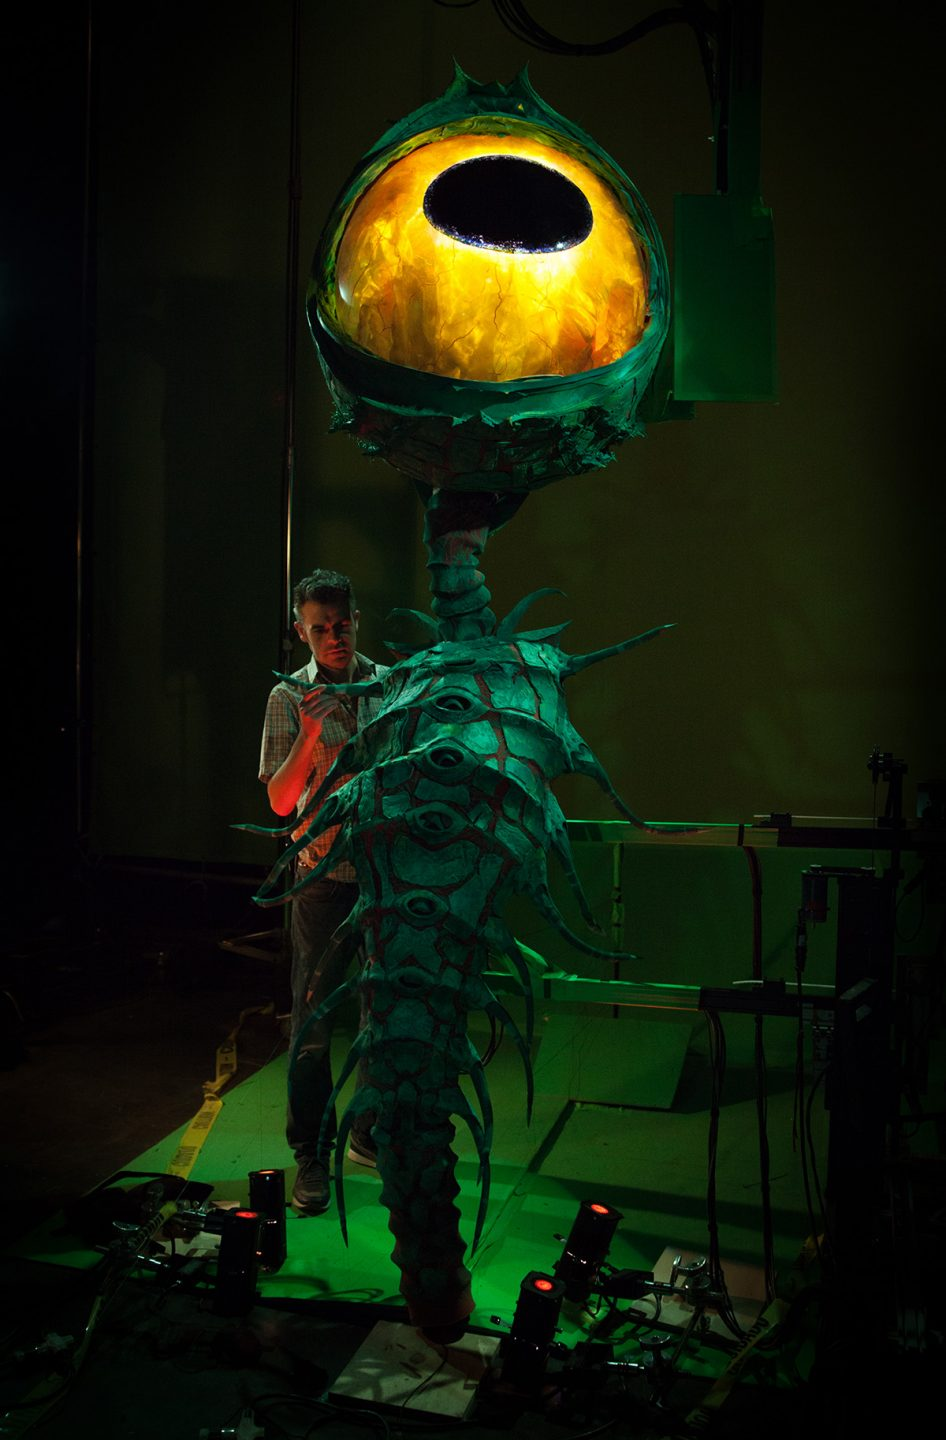 Rigging Supervisor Oliver Jones with the giant eye puppet. Photo credit: Jason Ptaszek / Laika Studios / Focus Features.